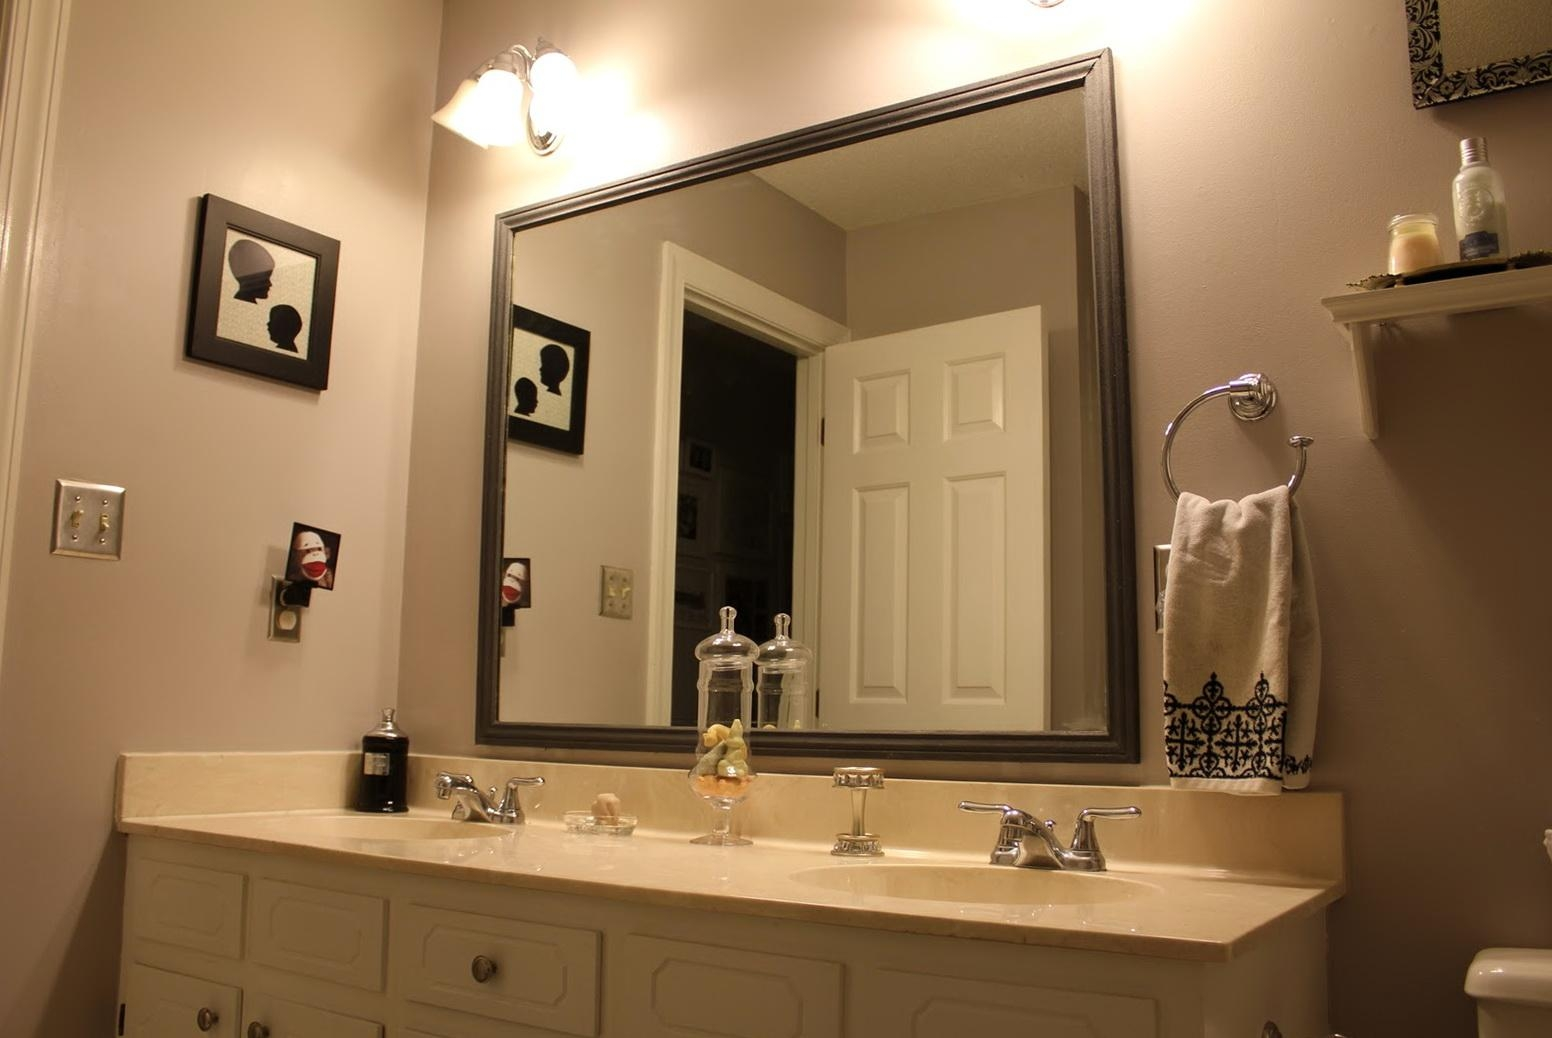 Where Can I Buy A Vanity Mirror Large Flat Bathroom Mirrors Pertaining To Large Flat Bathroom Mirrors (Image 20 of 20)